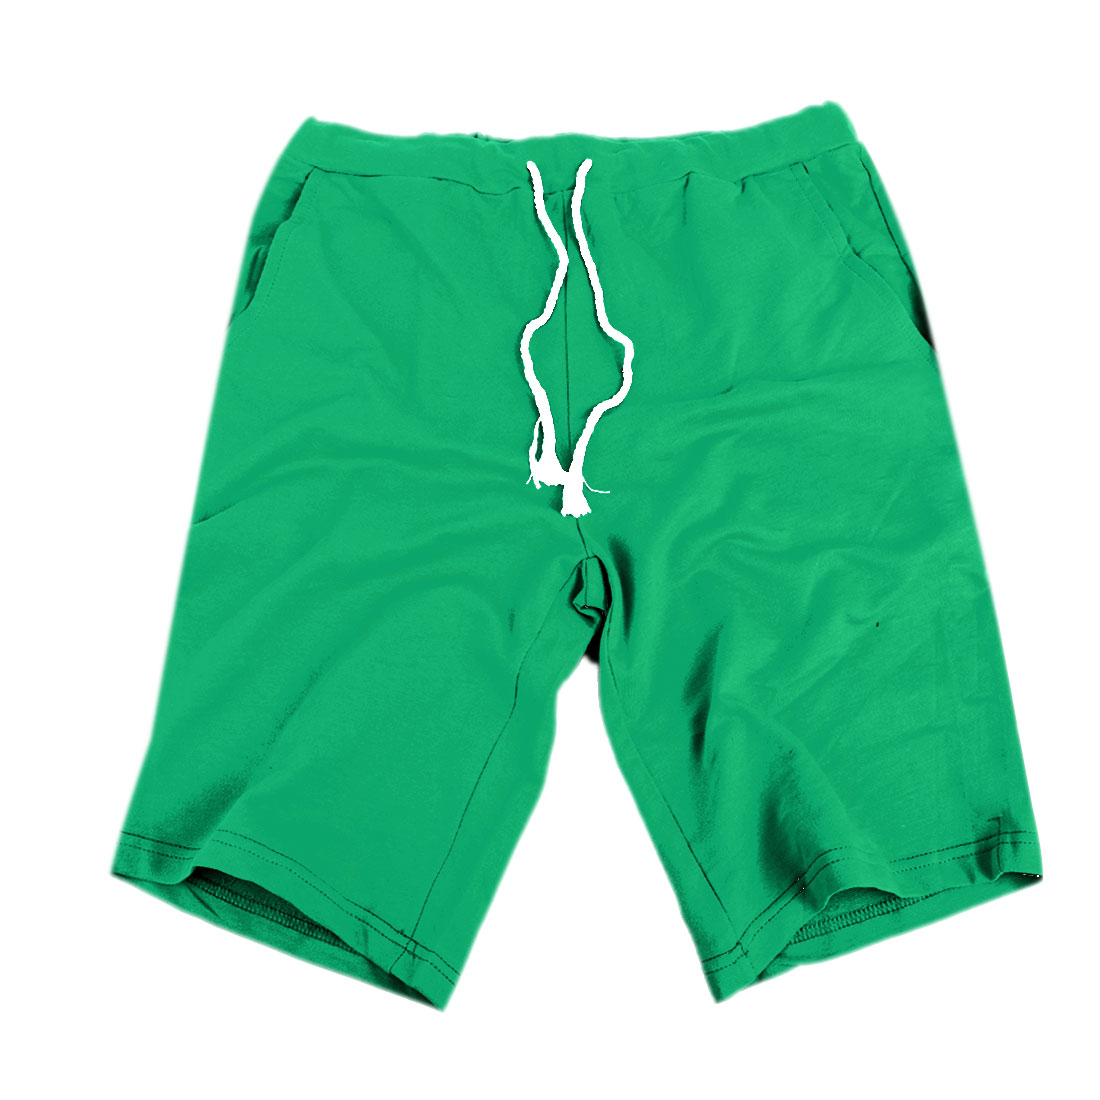 Man Medium Green Stylish Mid Rise Korean Style Short Pants W29